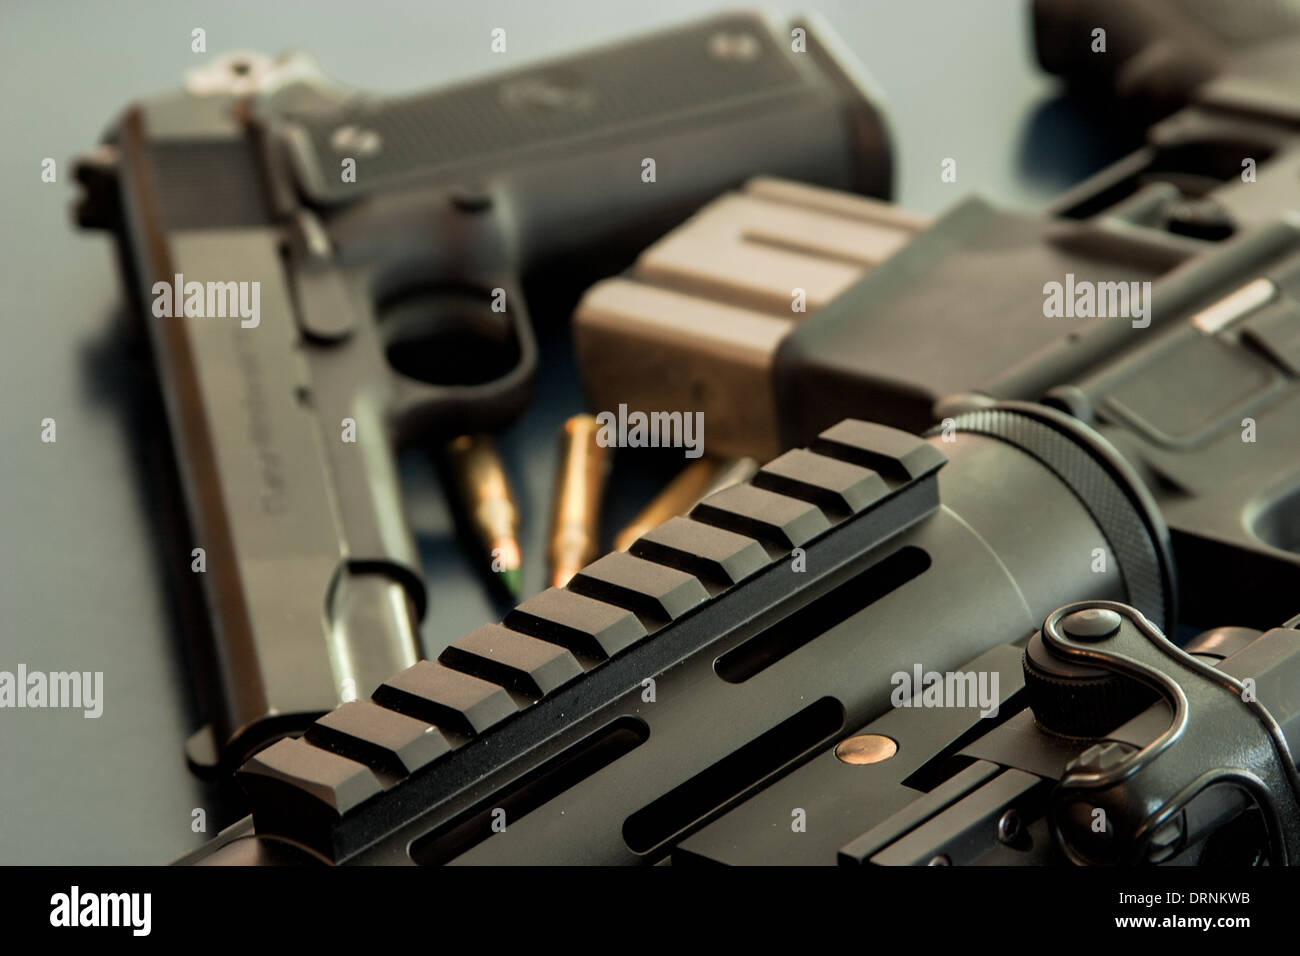 Assorted guns and ammo sitting on dark table - Stock Image